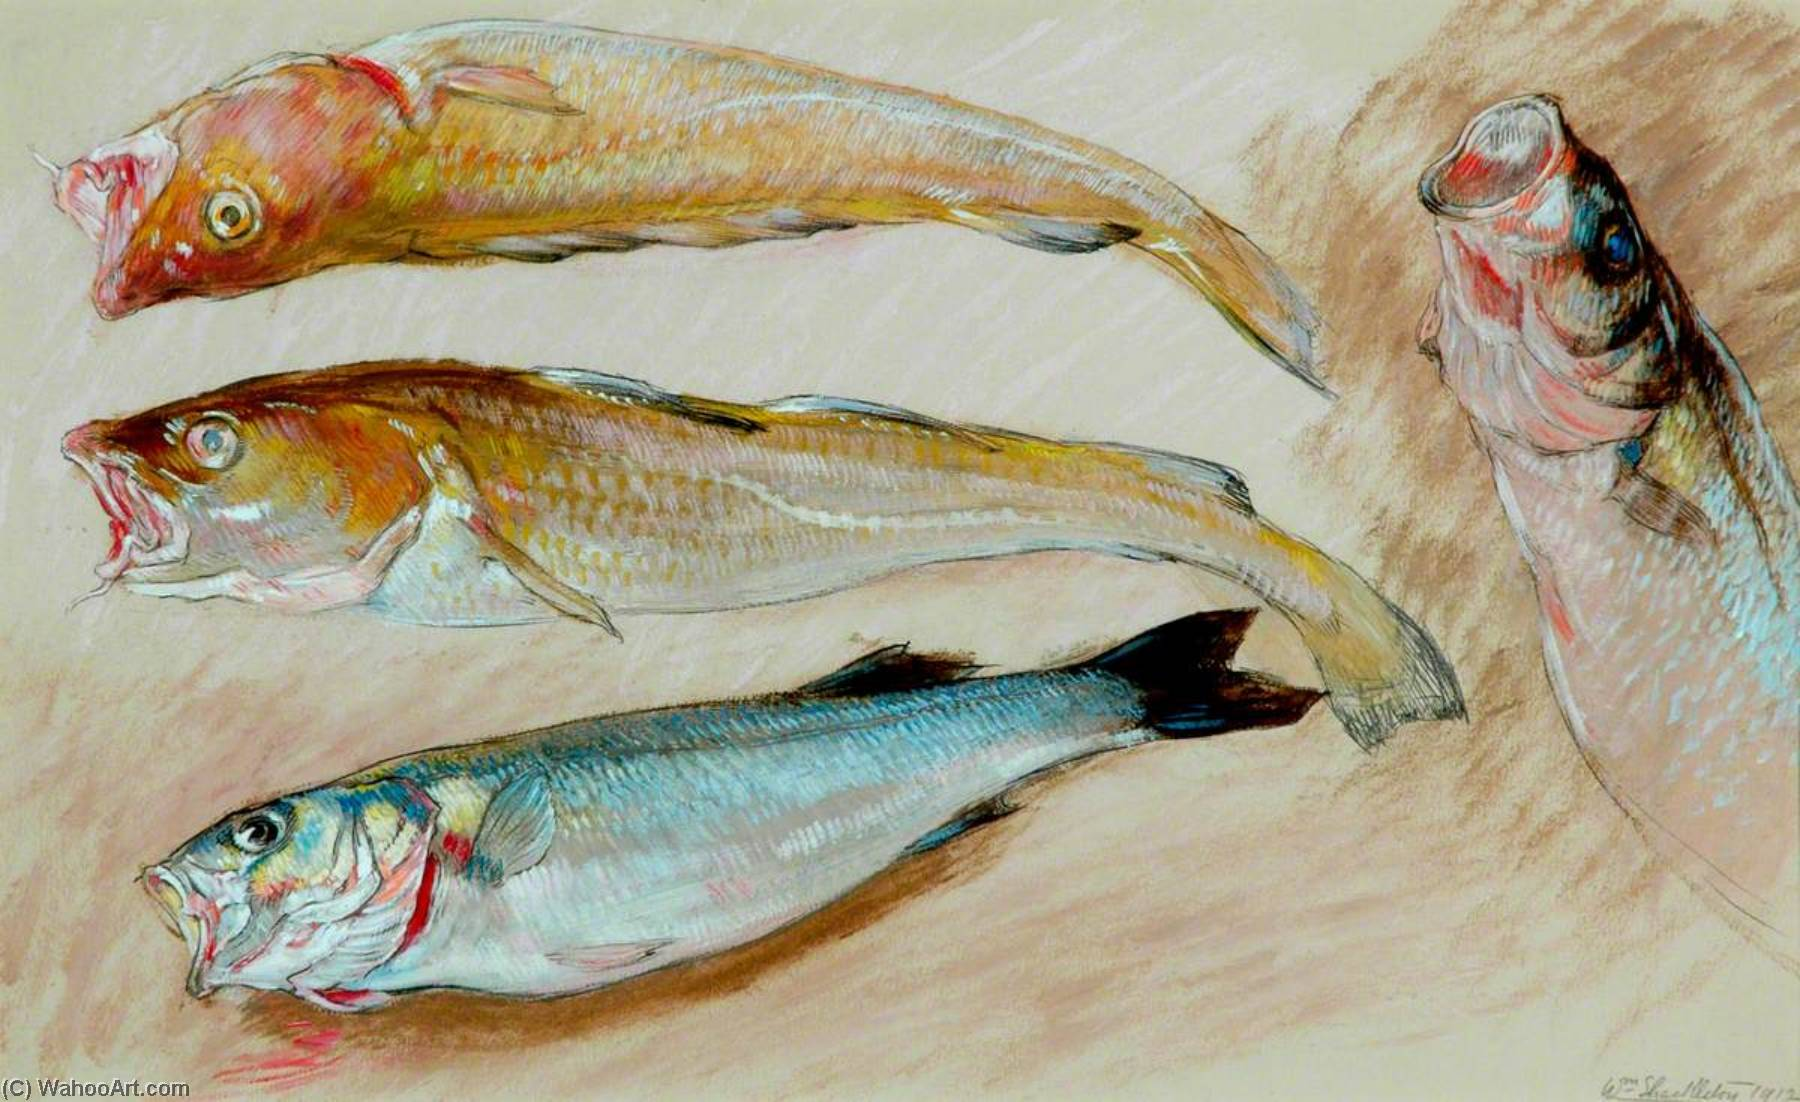 Order Art Reproductions | Study of Four Fish for `The Mackerel Nets`, 1912 by William Shackleton | WahooArt.com